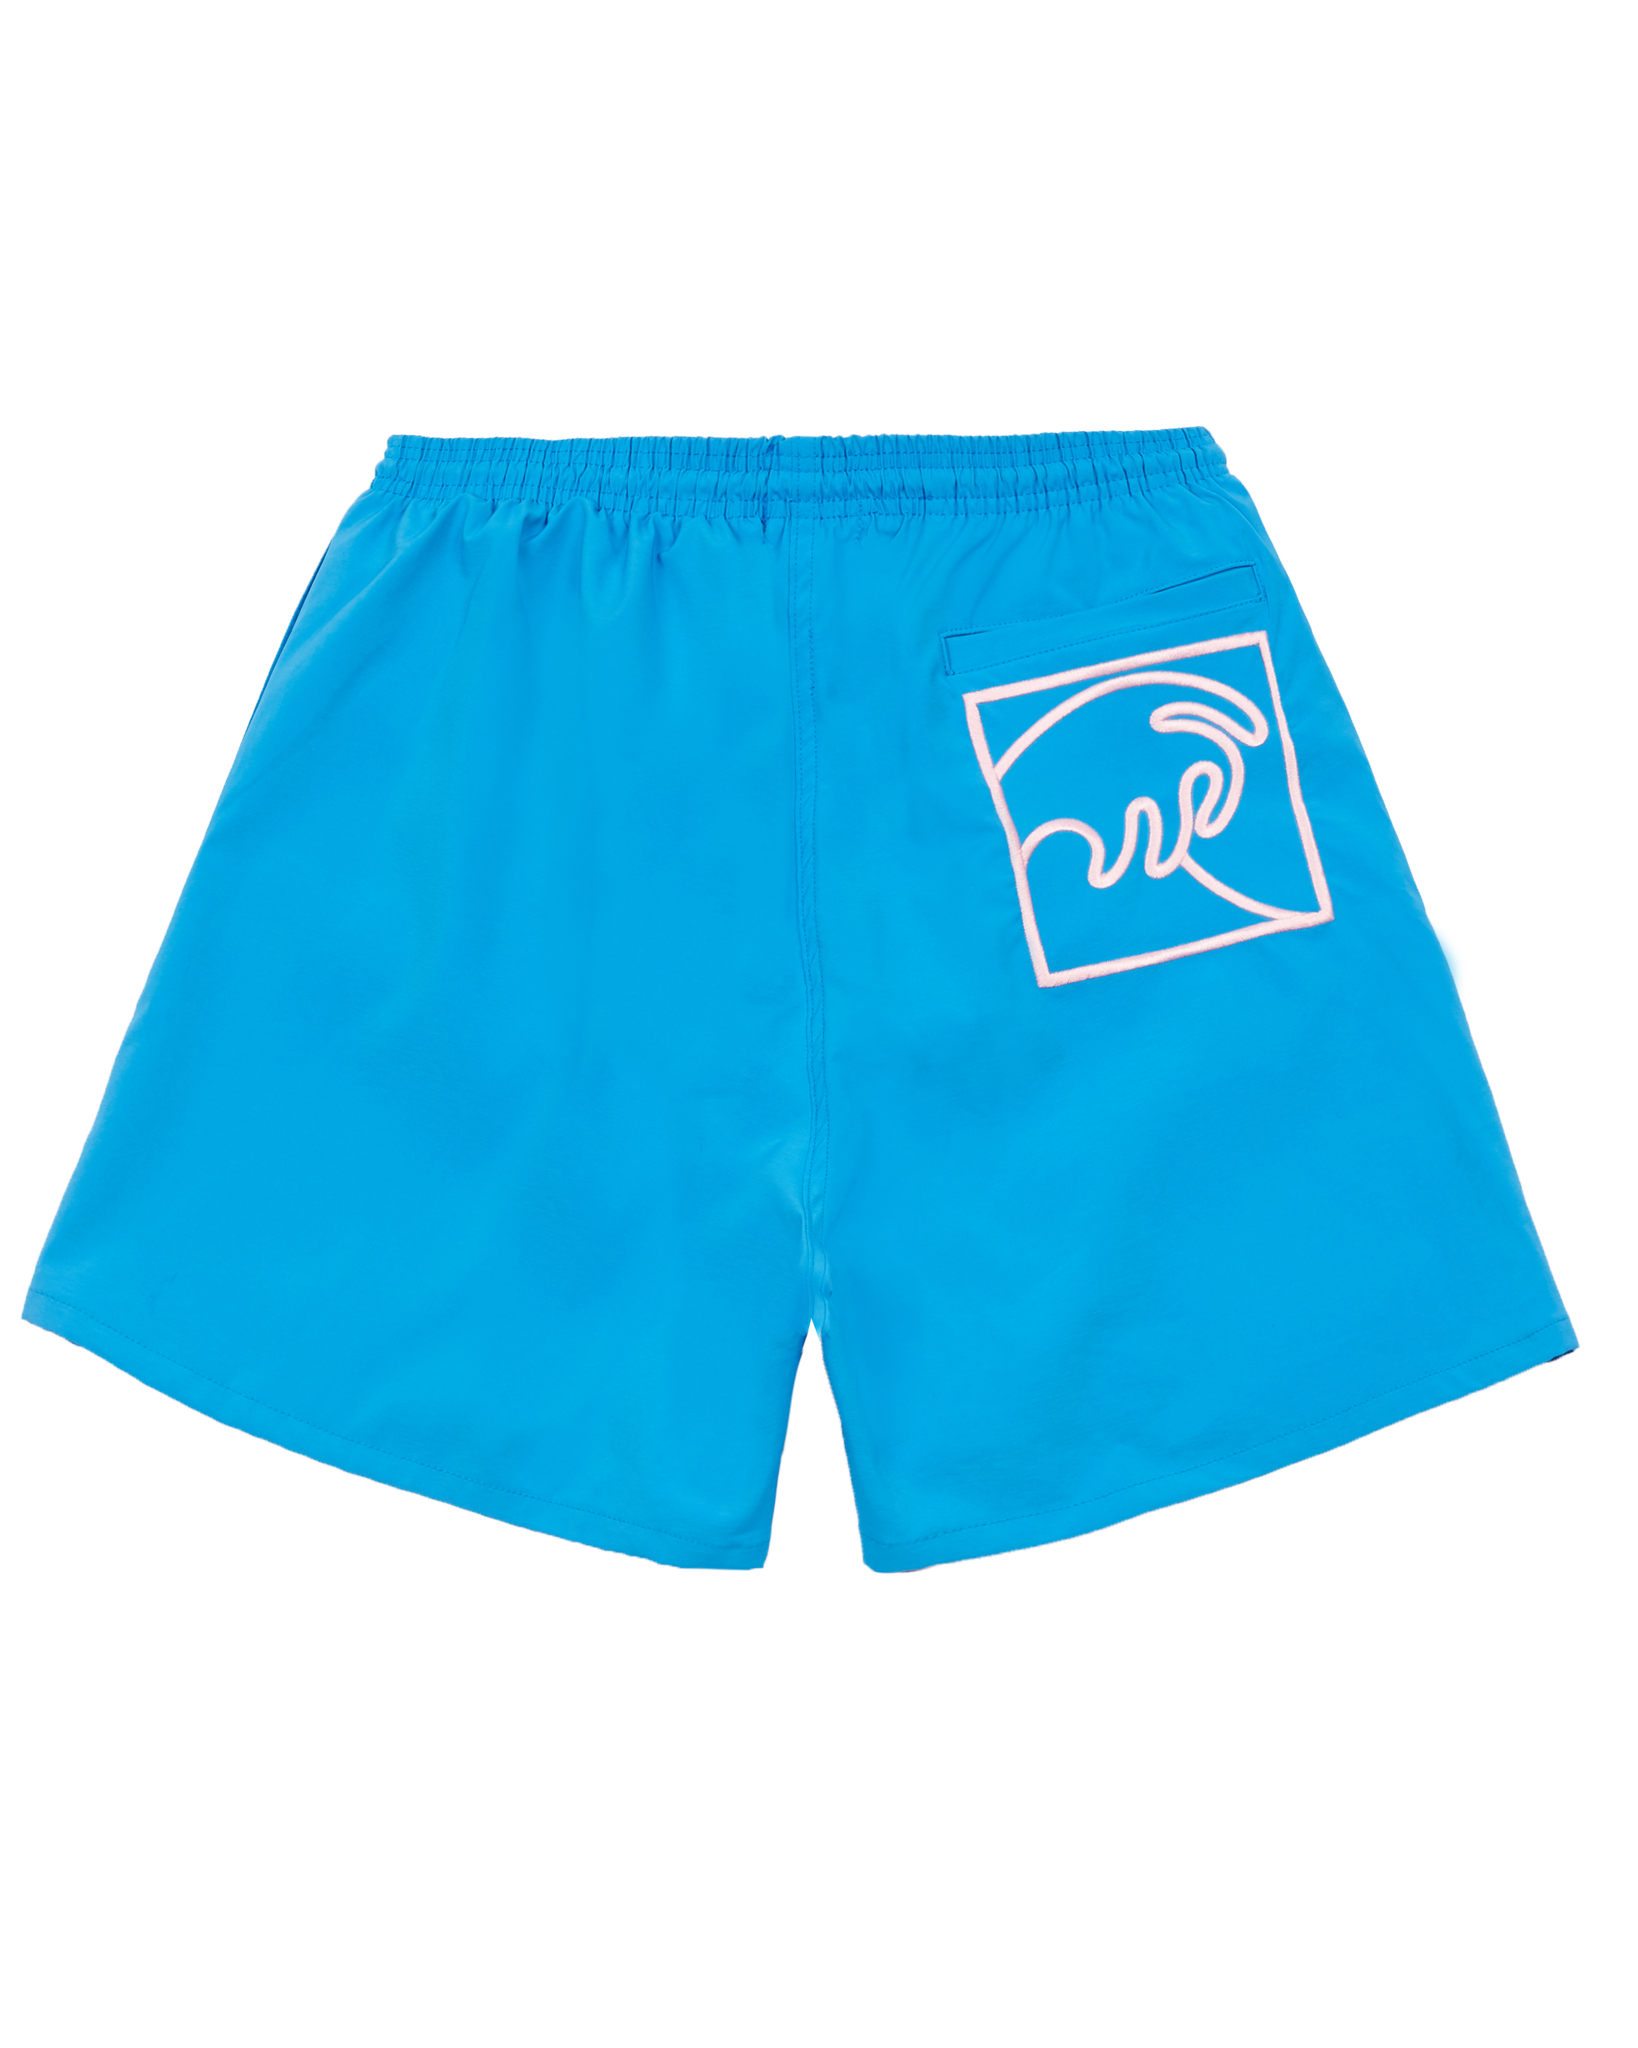 PACIFIC BLUE SWIM SHORT WITH LIGHT PINK WAVE